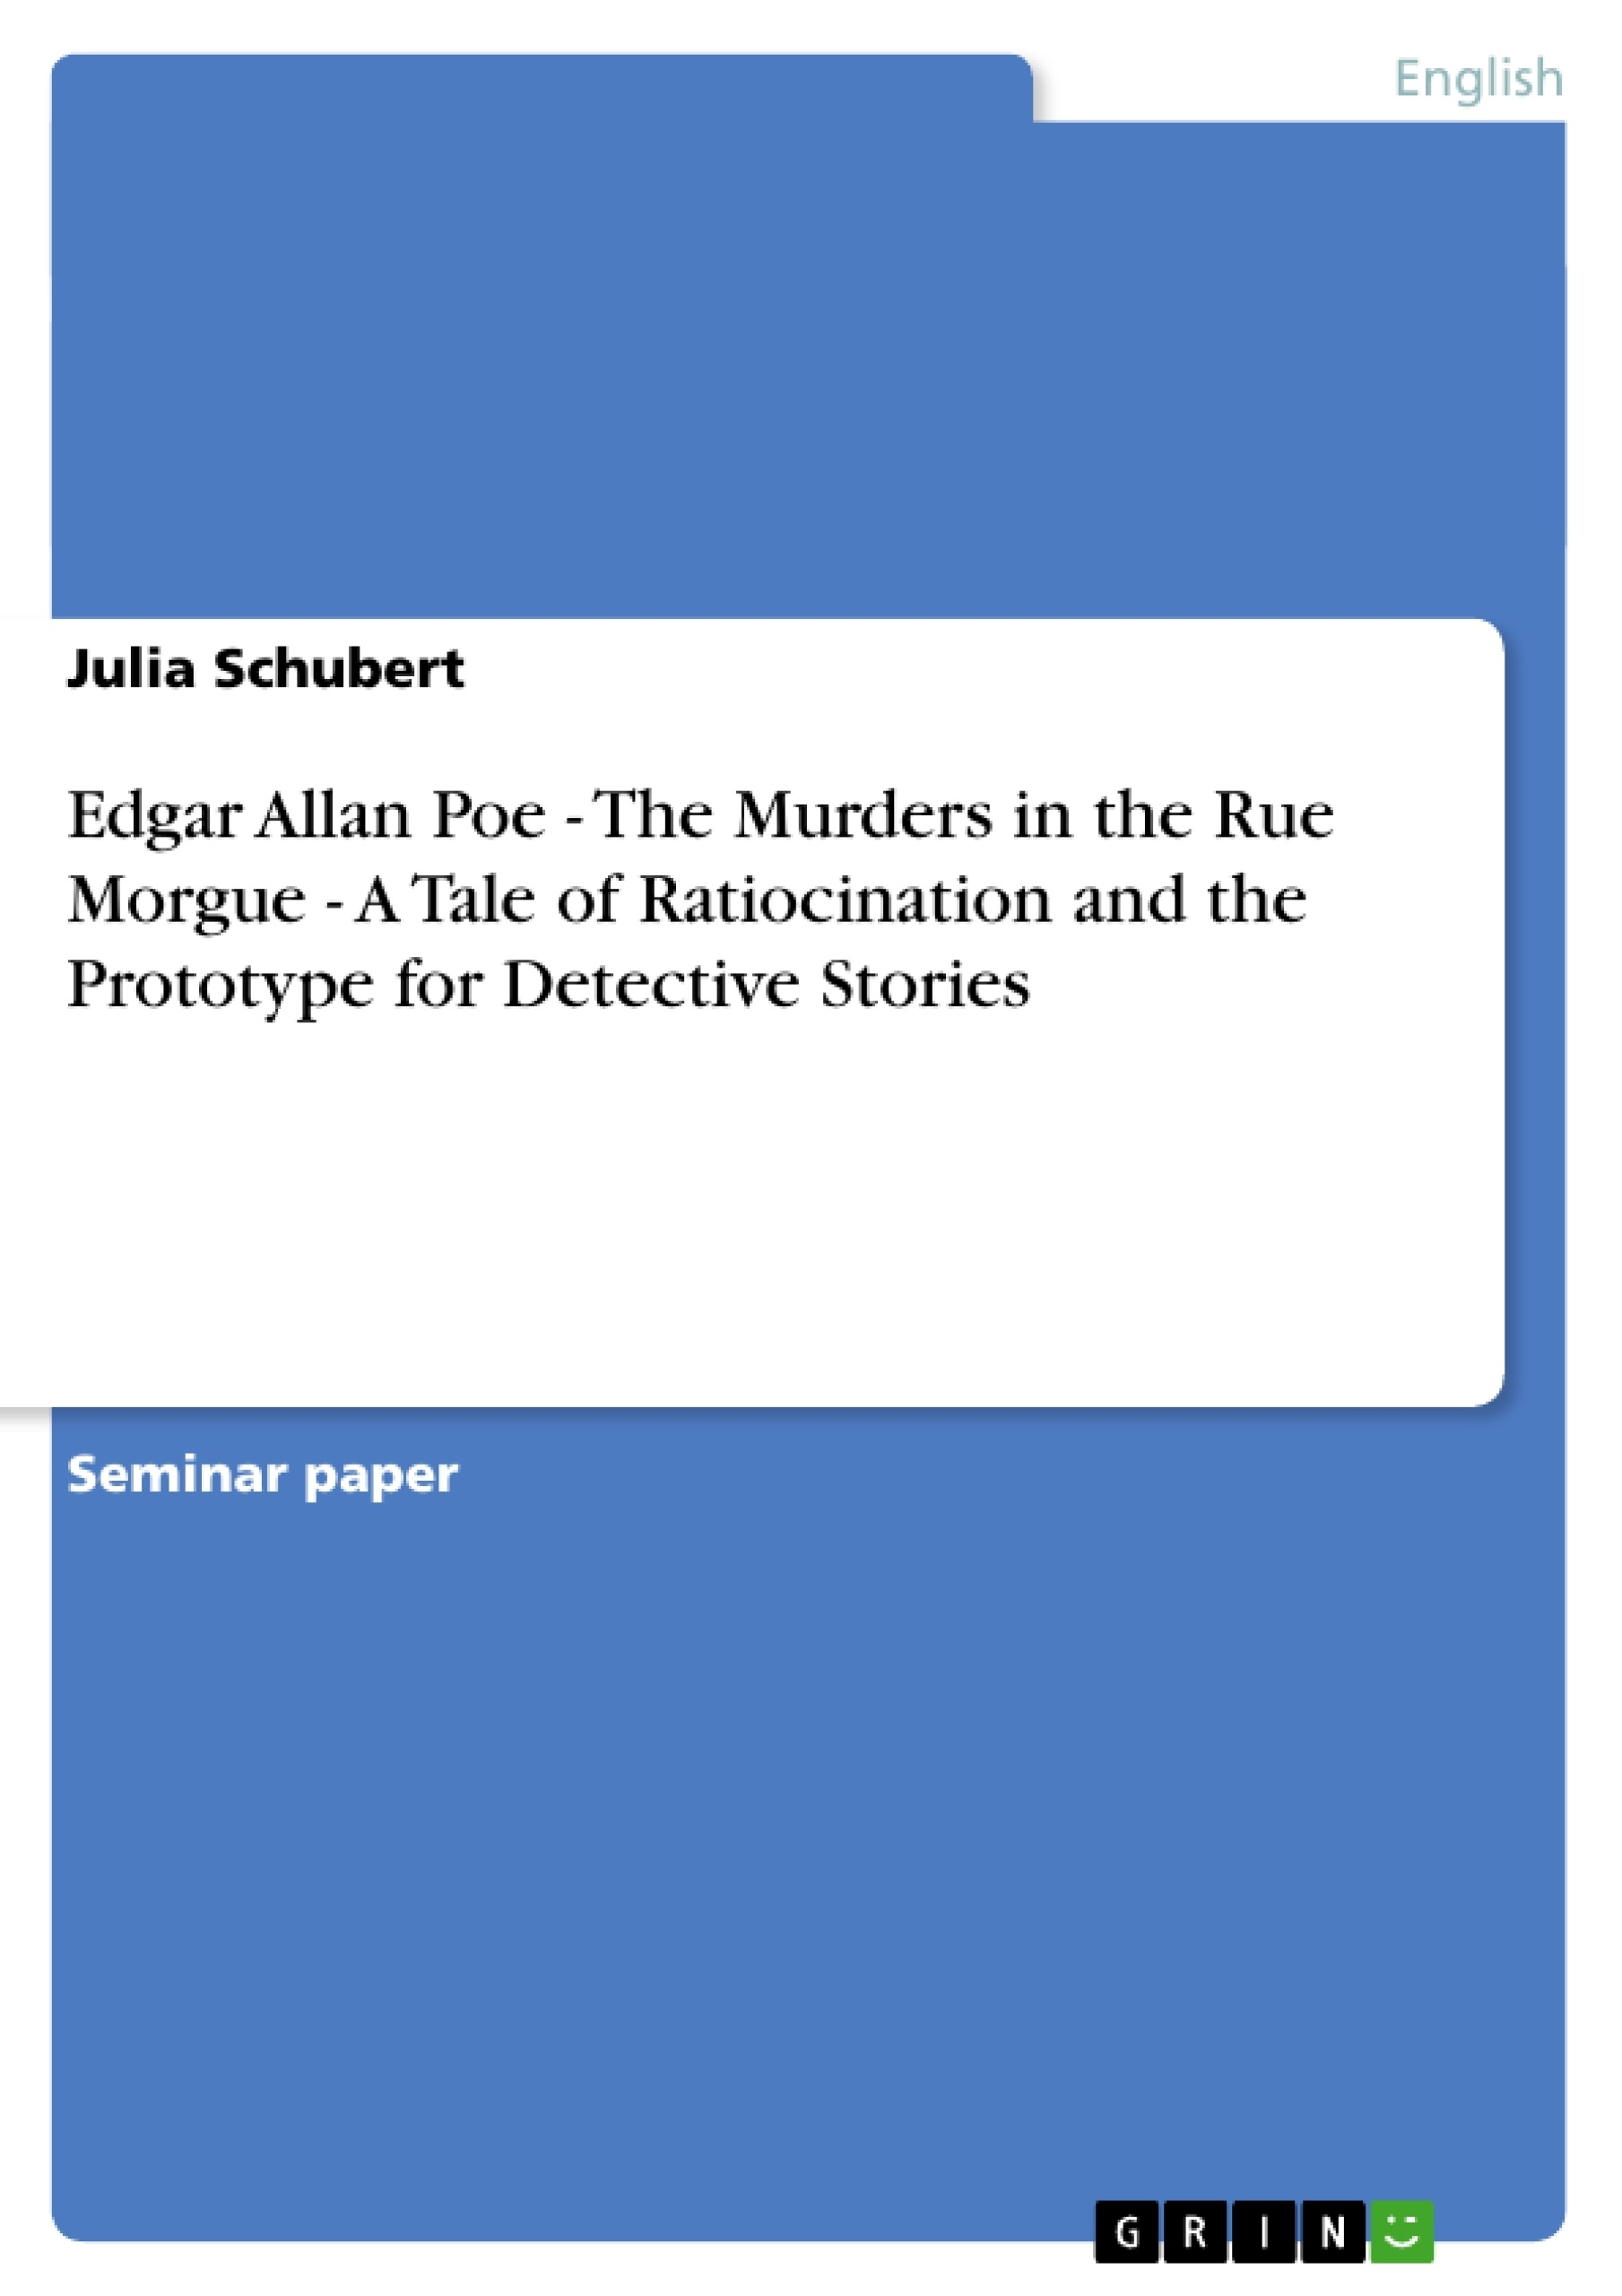 Title: Edgar Allan Poe - The Murders in the Rue Morgue - A Tale of Ratiocination and the Prototype for Detective Stories